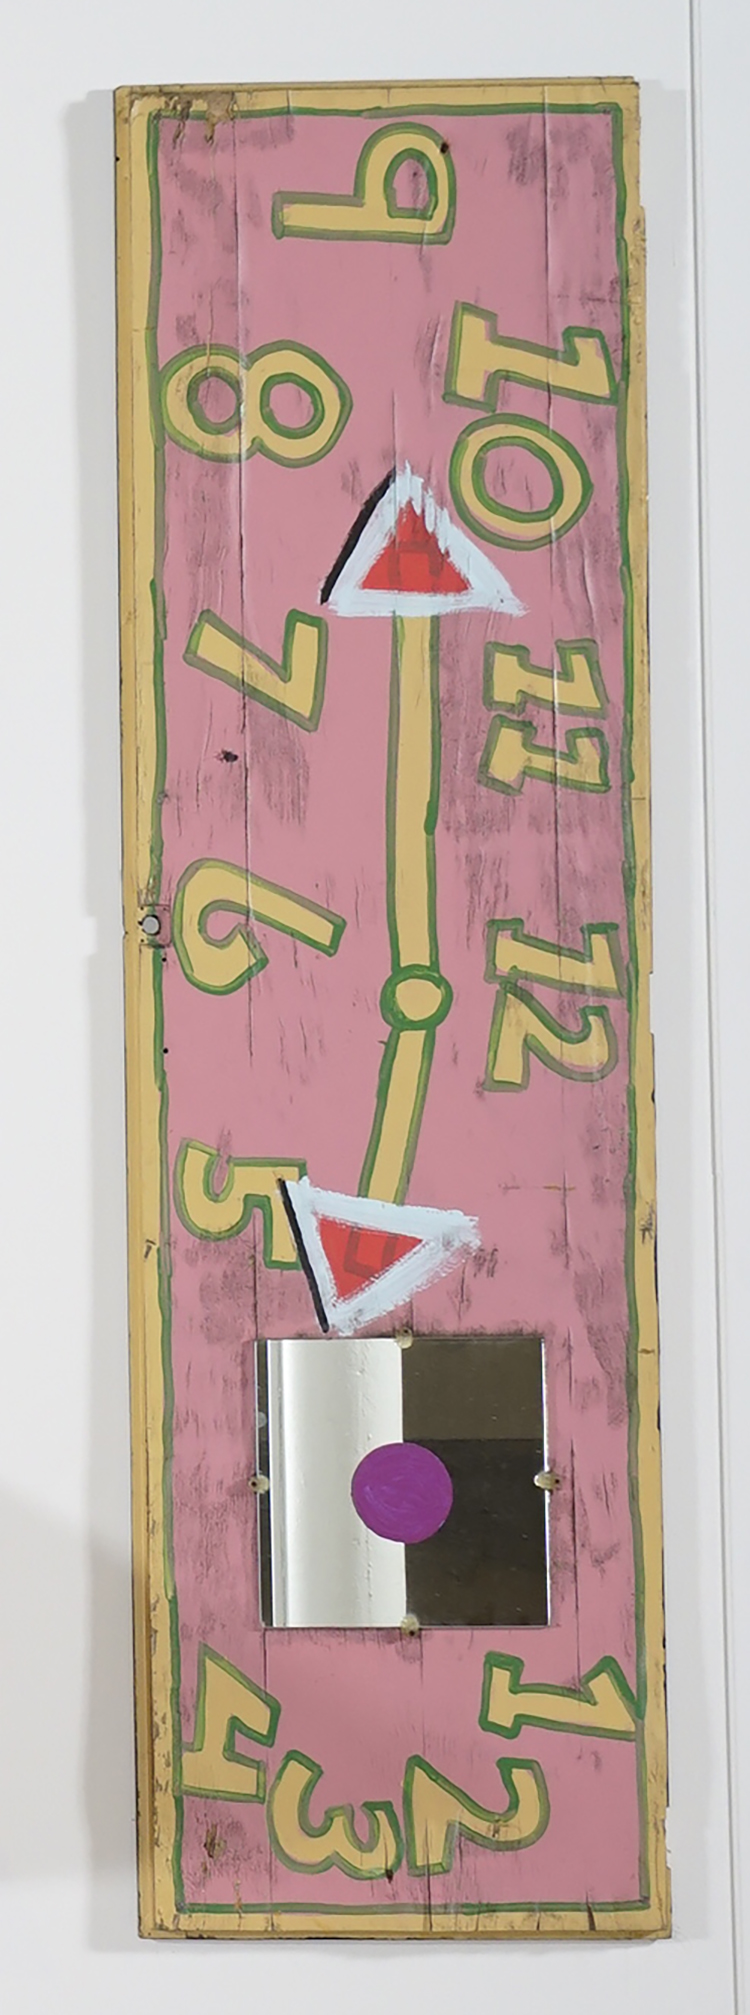 Tyree Guyton,  What time is it (clock series) , 2014, mixed media, 78 × 22 × 1 inches